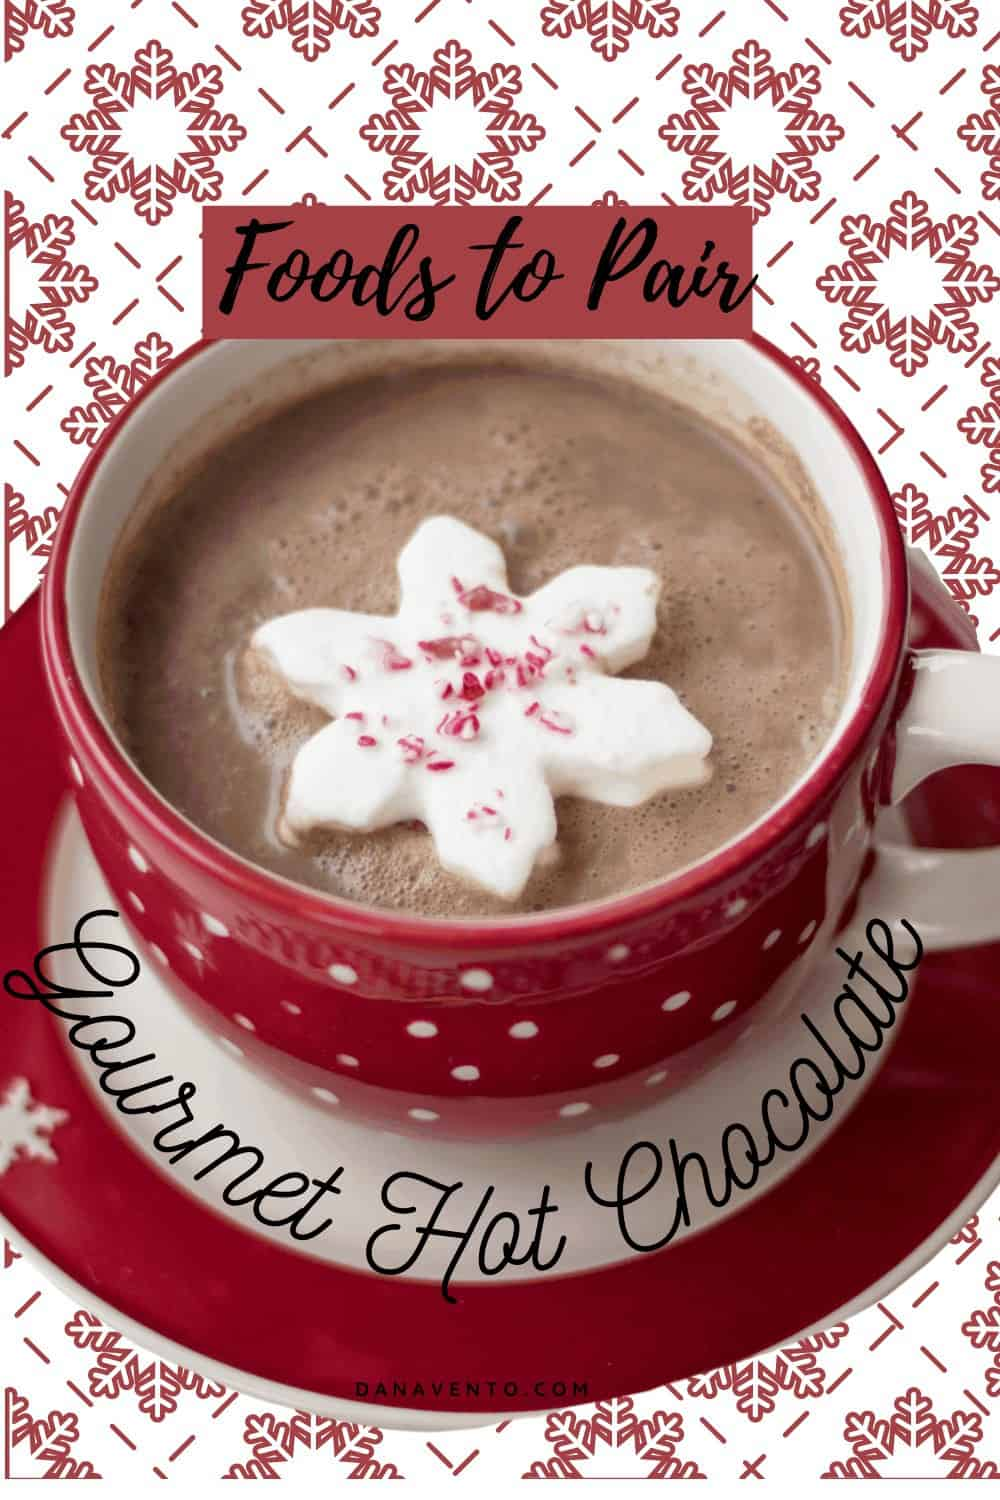 Gourmet Hot Chocolate with a snowflake marshmallow